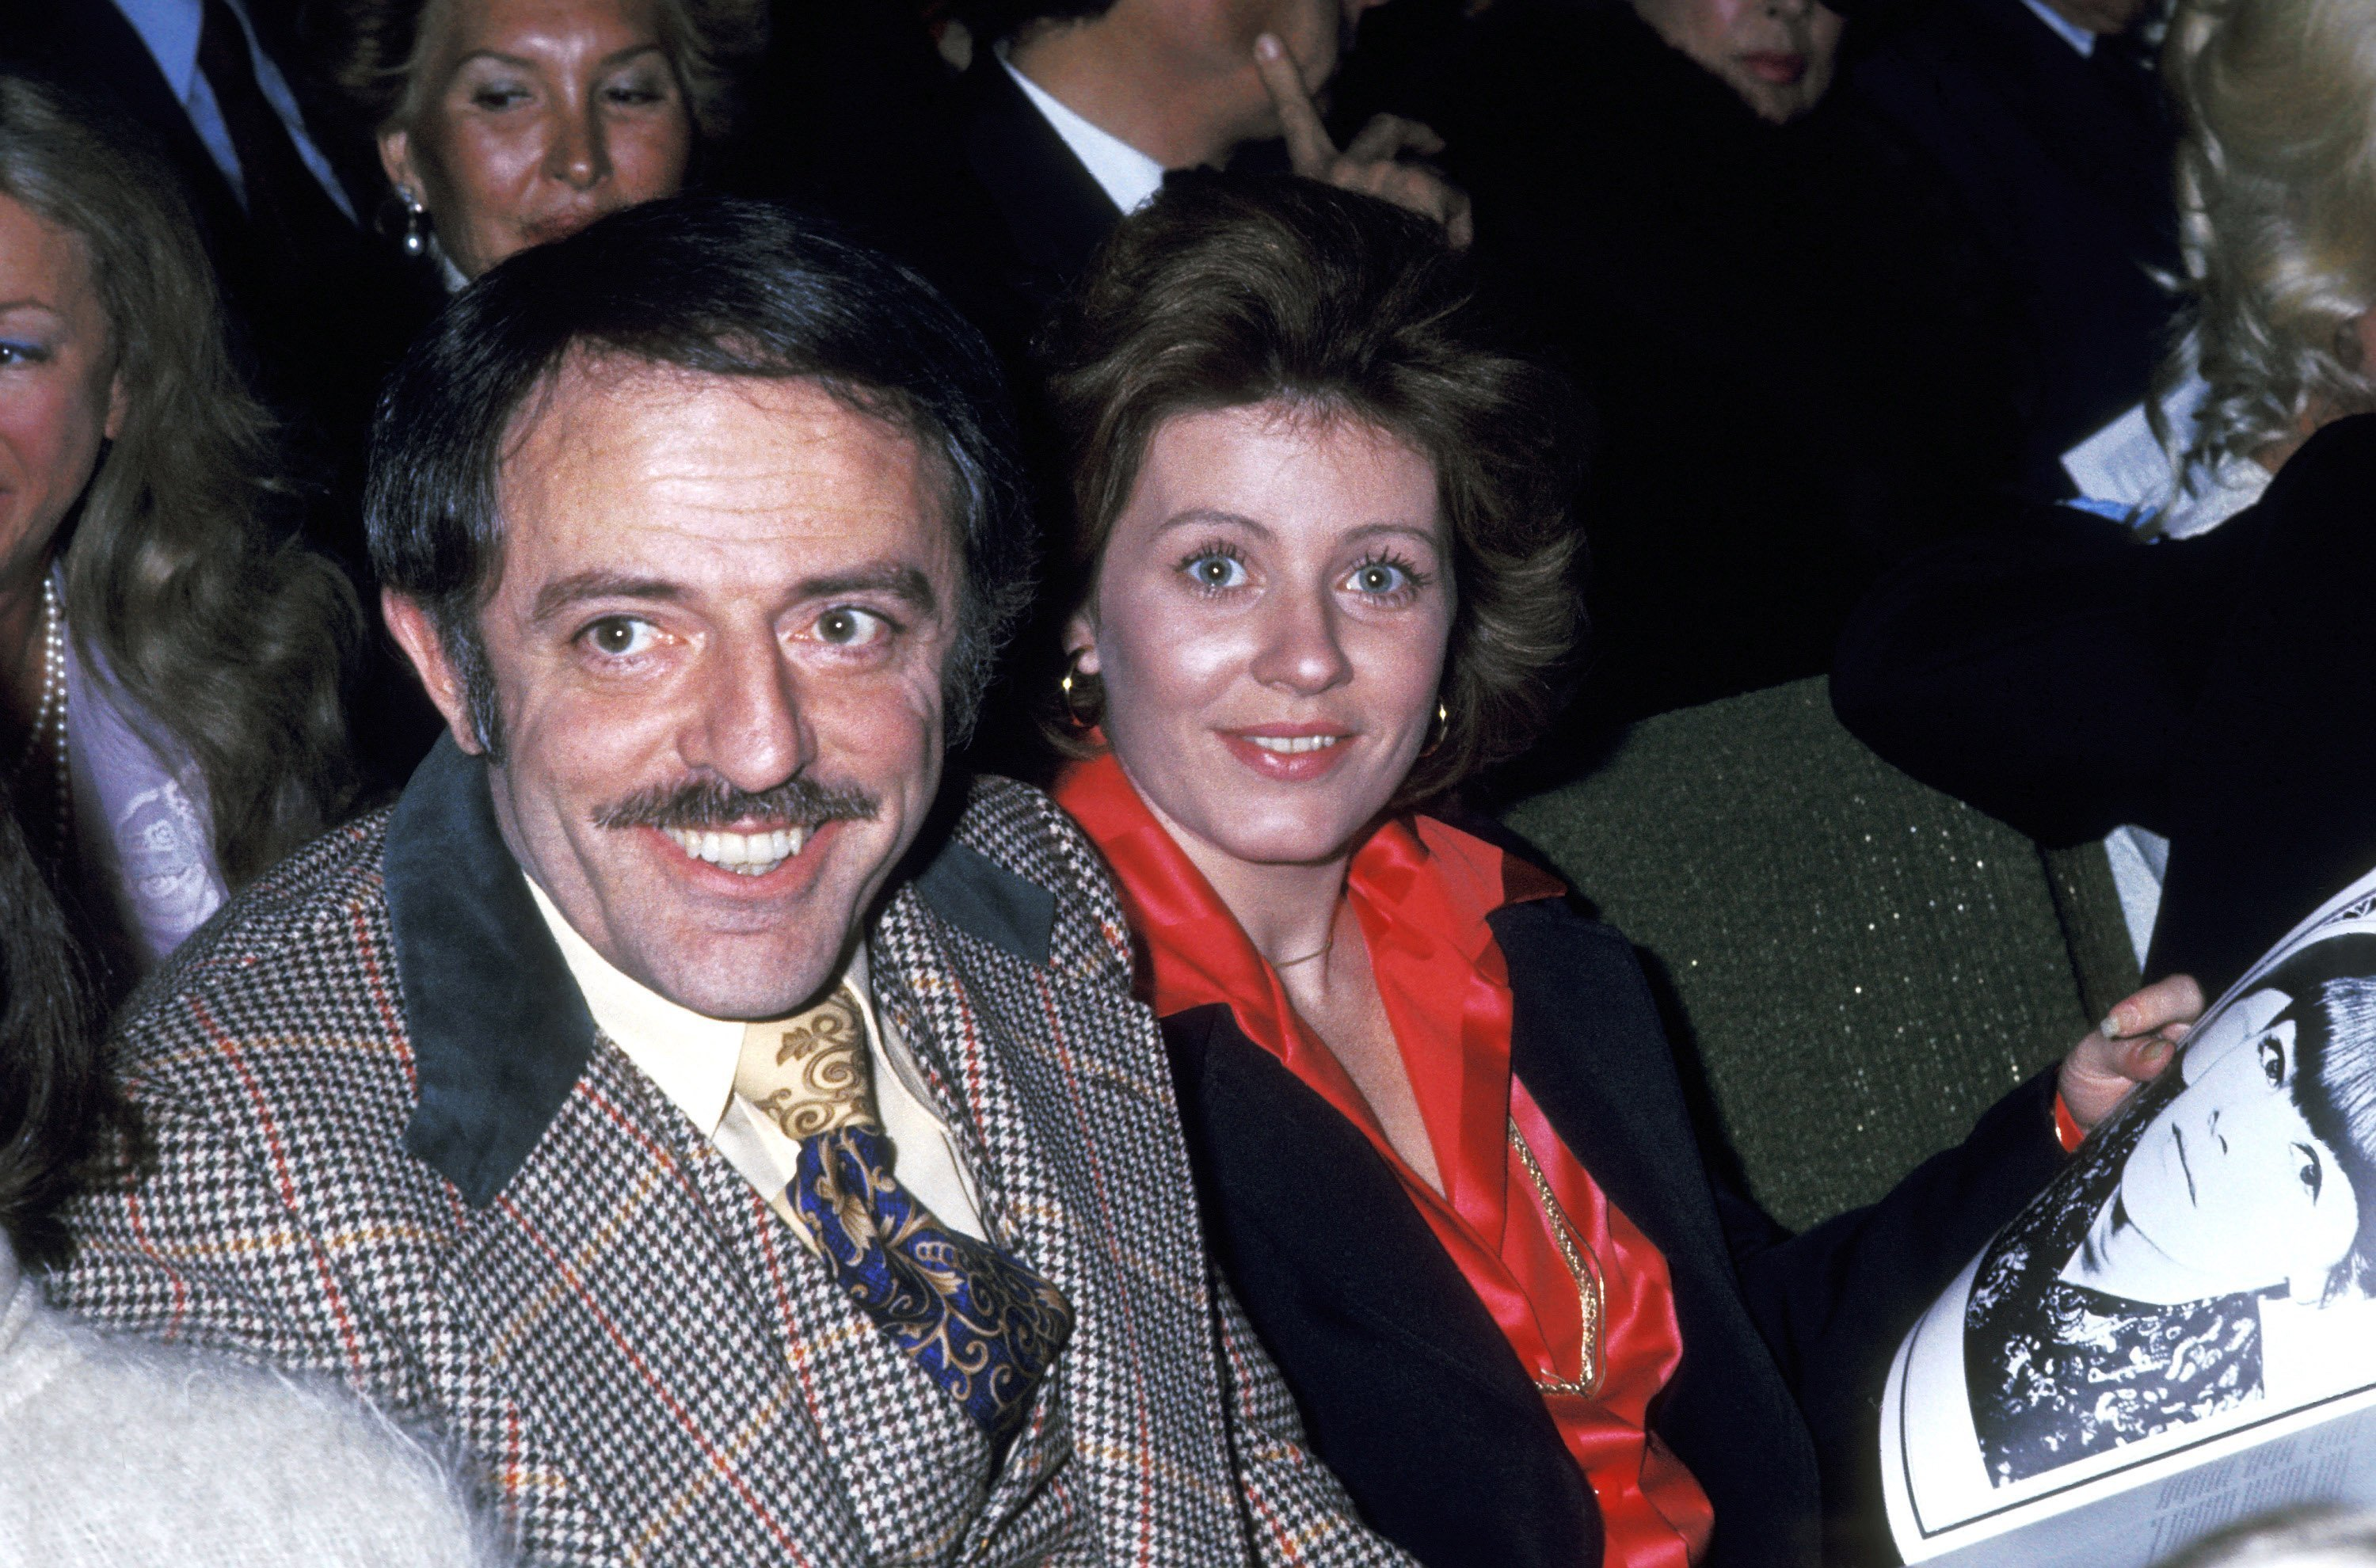 John Astin and Patty Duke on April 9, 1975 in Hollywood, California | Source: Getty Images/Global Images Ukraine